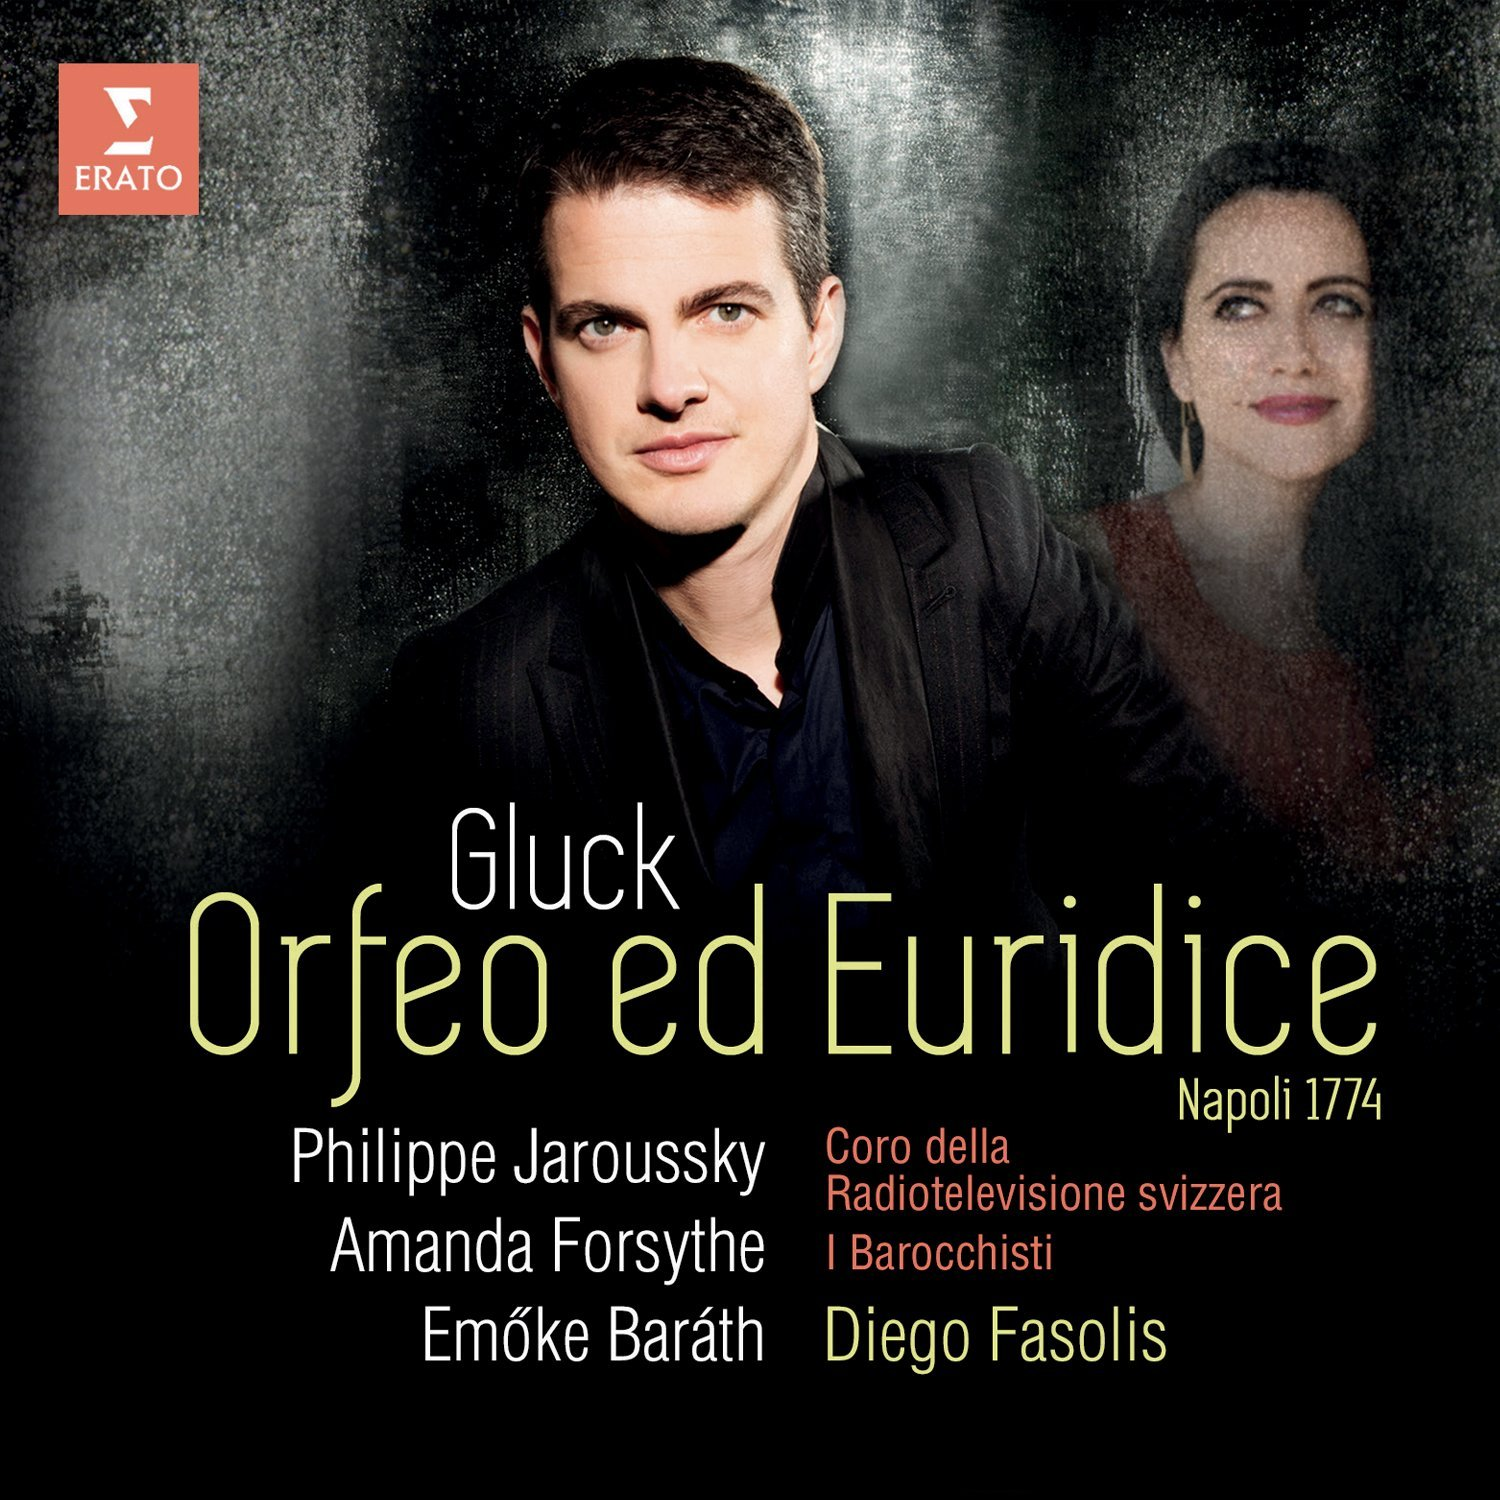 GLUCK ORFEO napoli 1774 fasolis jaroussky forsythe cd erato cd review critique cd par classiquenews